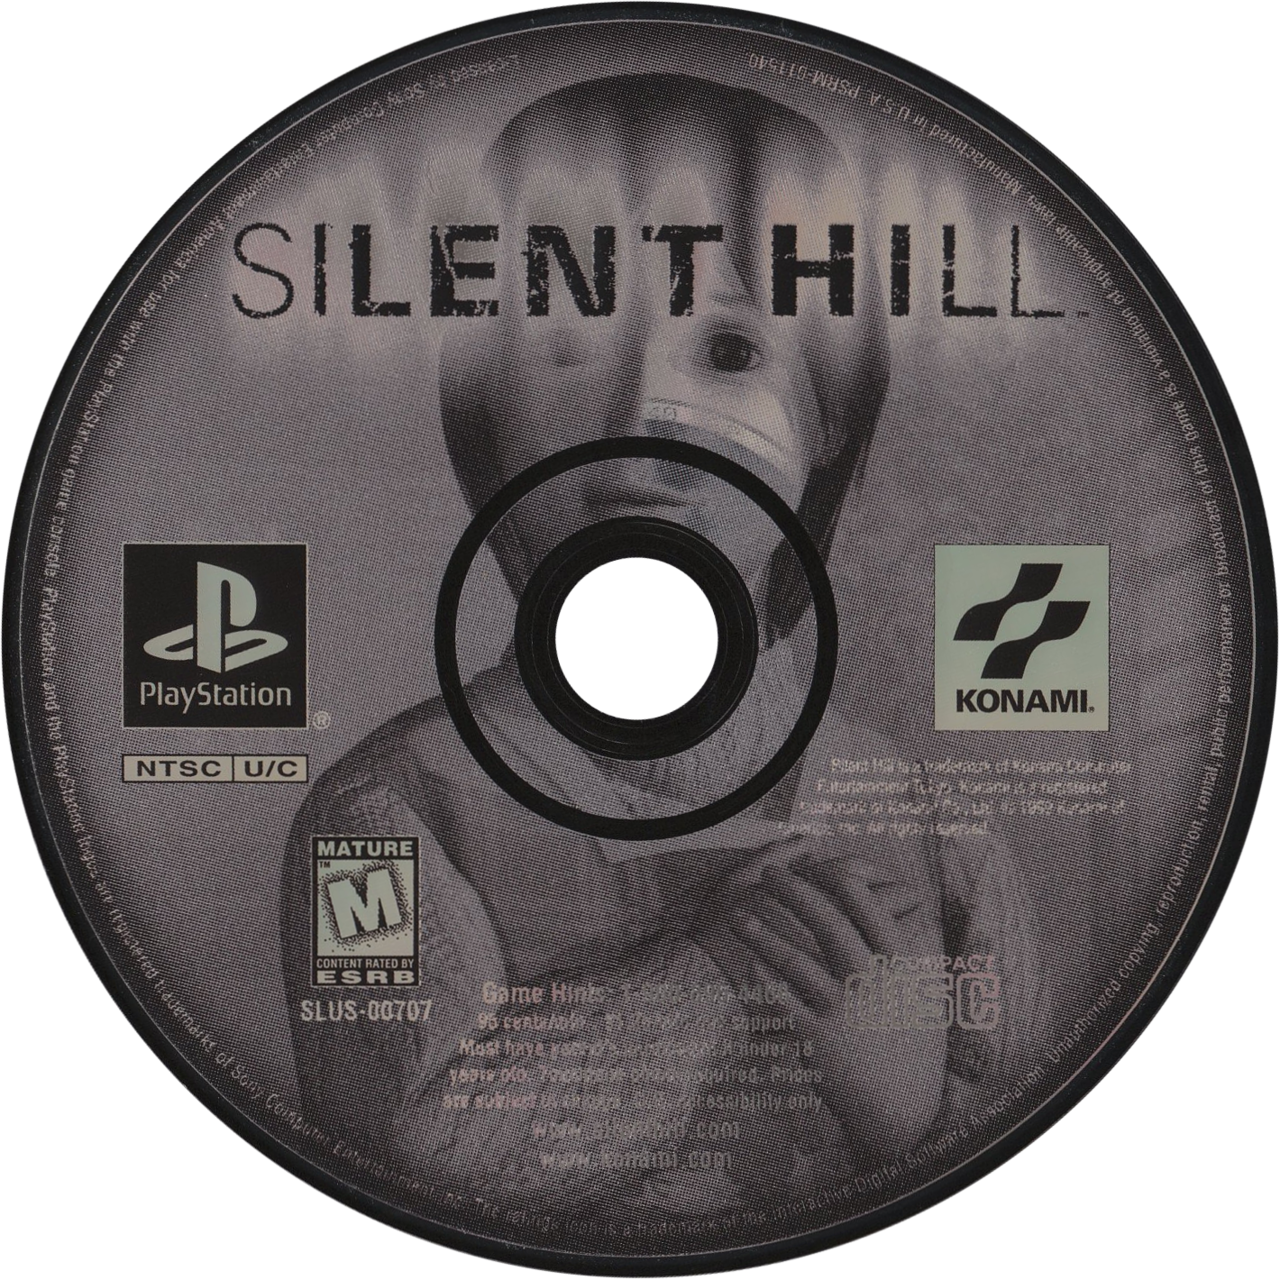 Pin By Erin On Silent Hill Gamer Photo Dump Silent Hill